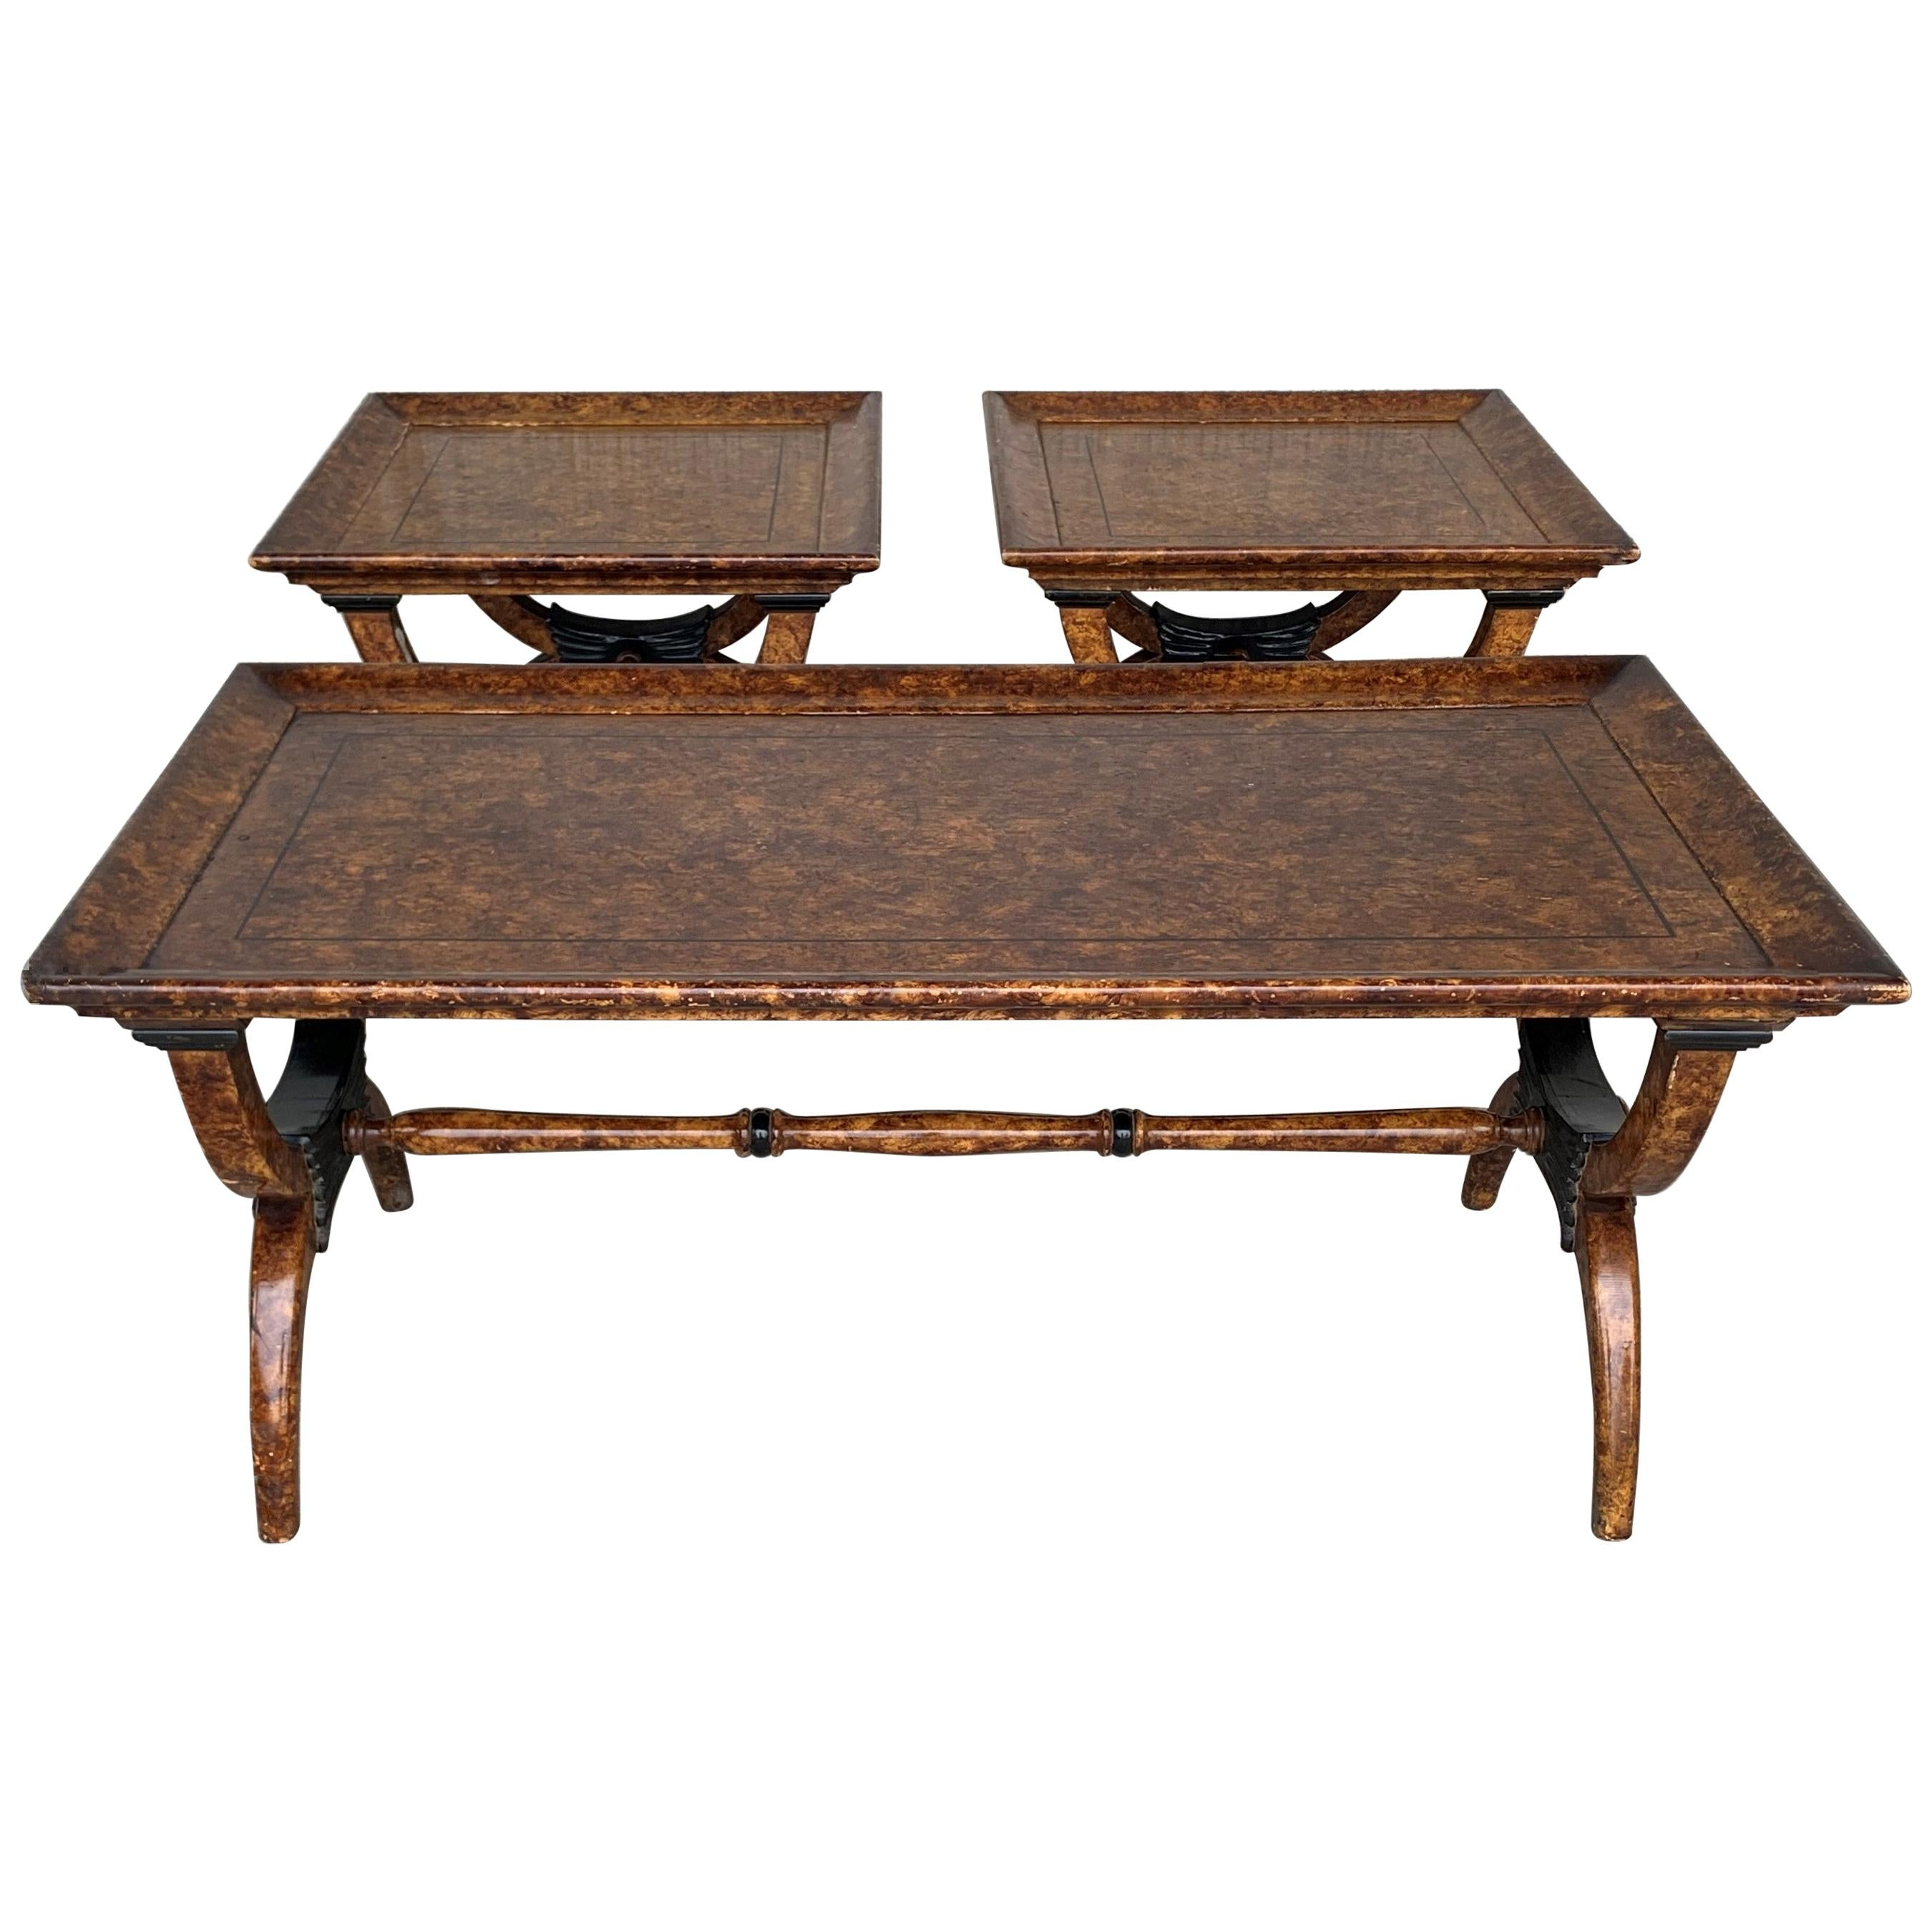 Eglomisé Side Tables in the Hollywood Regency Style